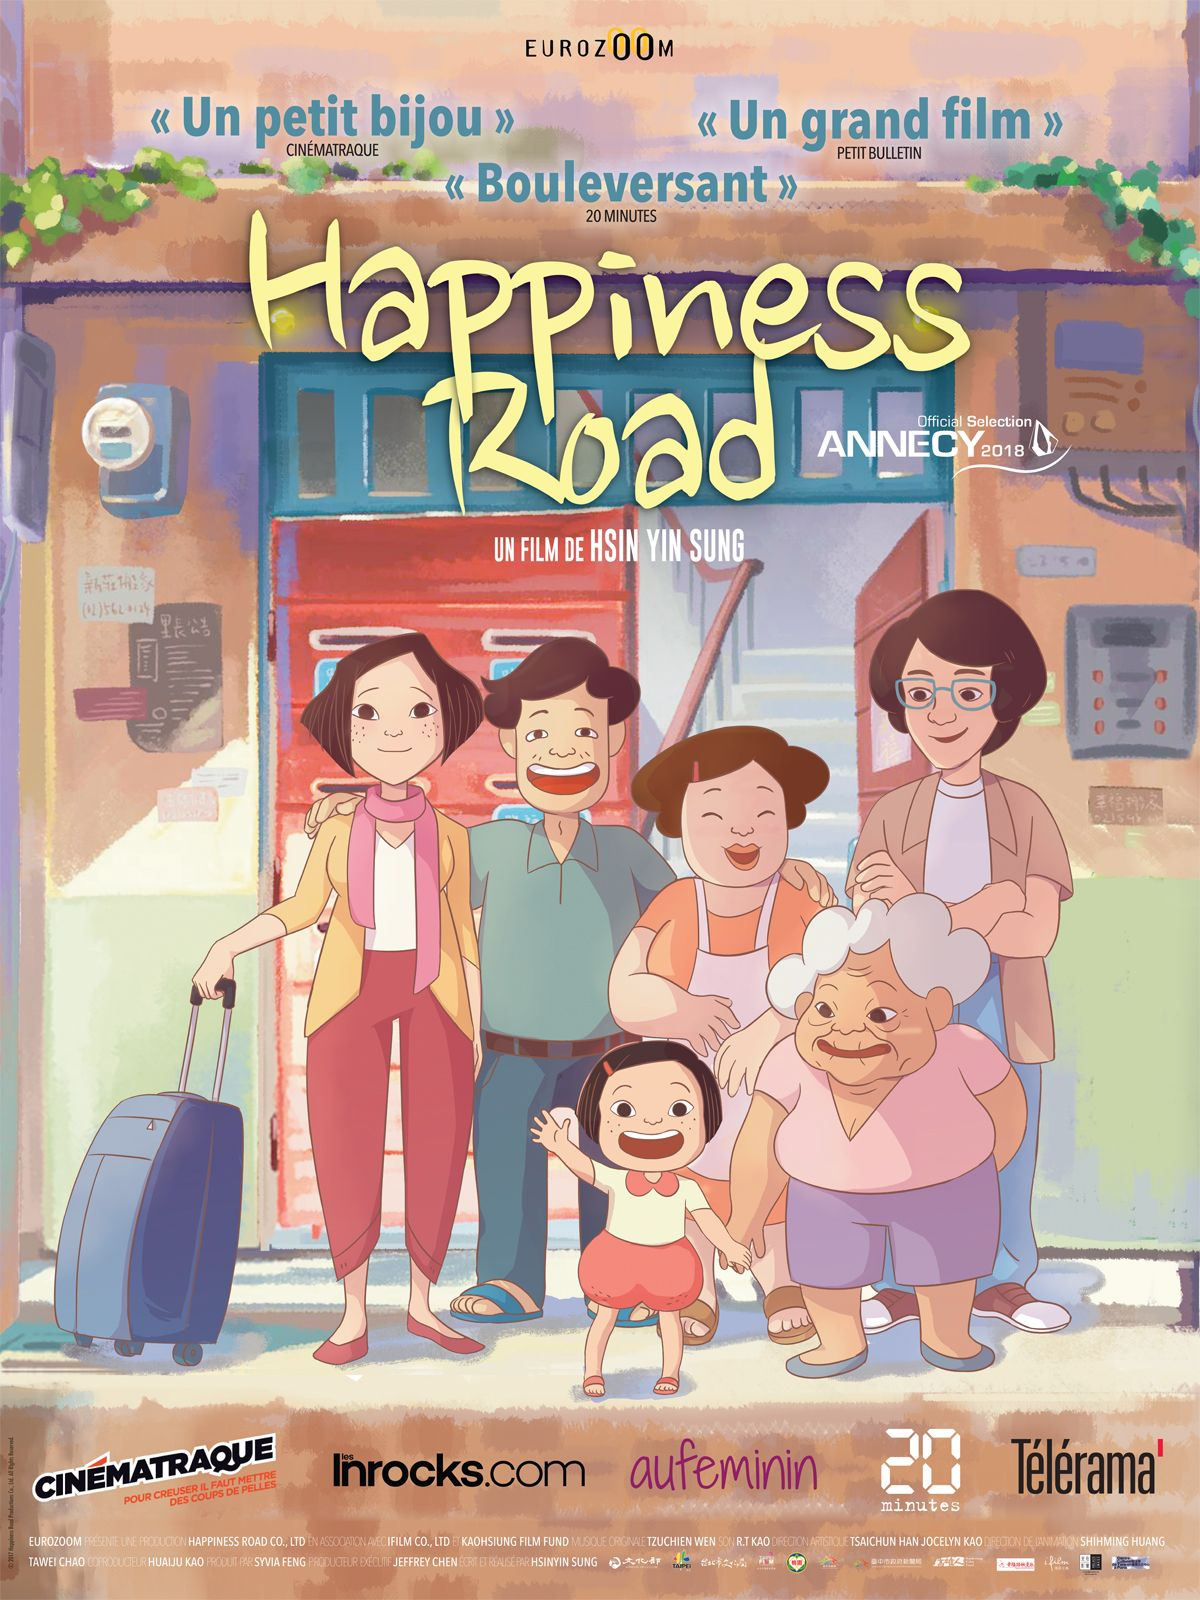 On Happiness Road (Taiwan, 2017) A young Taiwanese woman, transplanted to  the